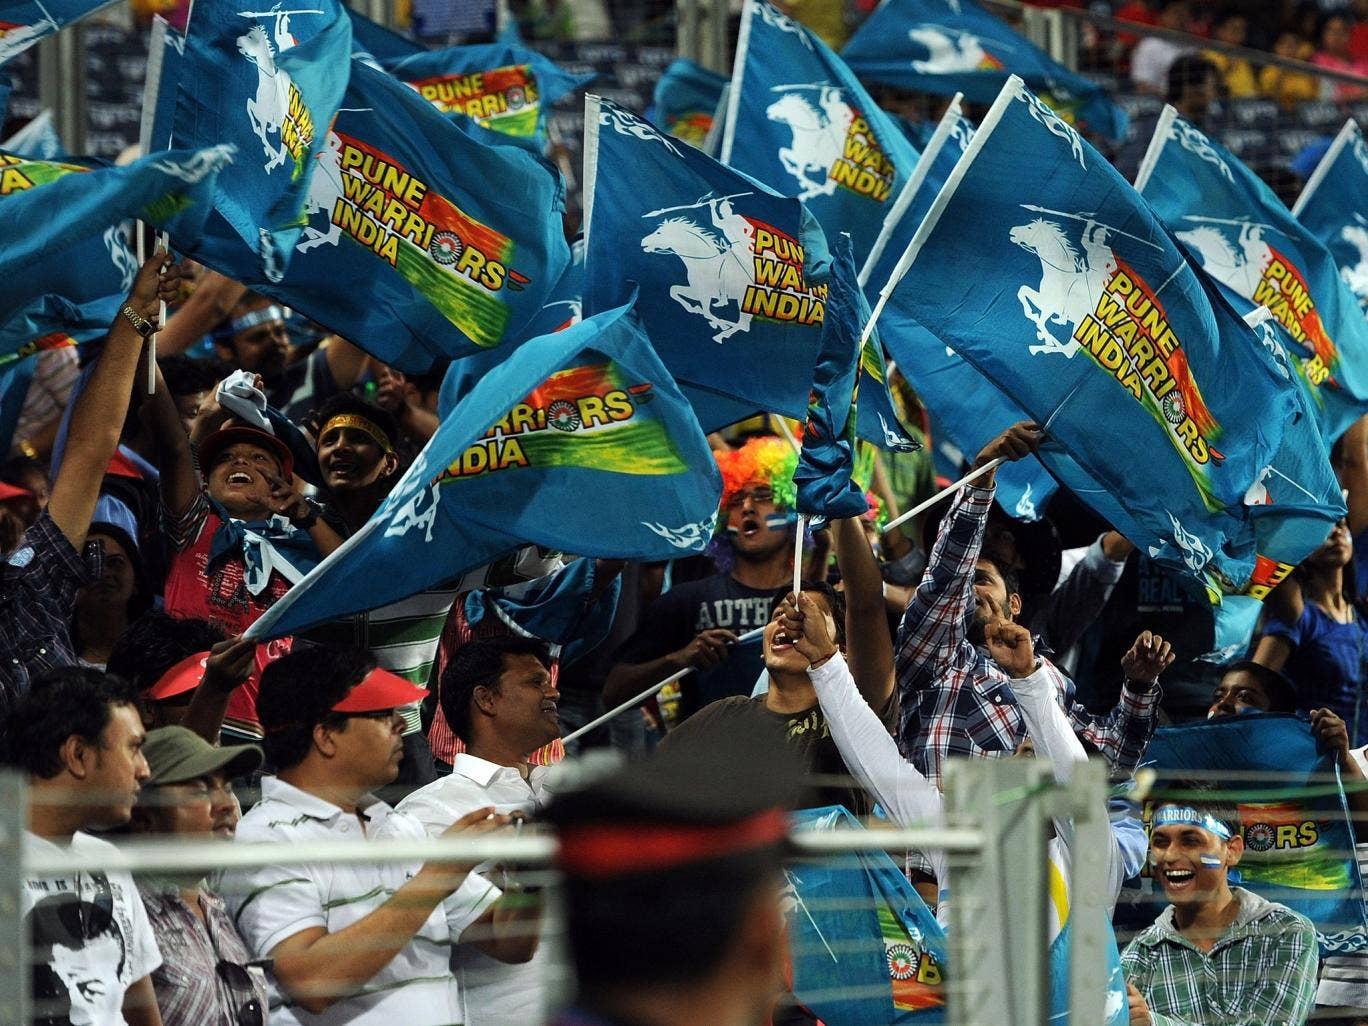 Indian Premier League fans have had little to cheer about lately